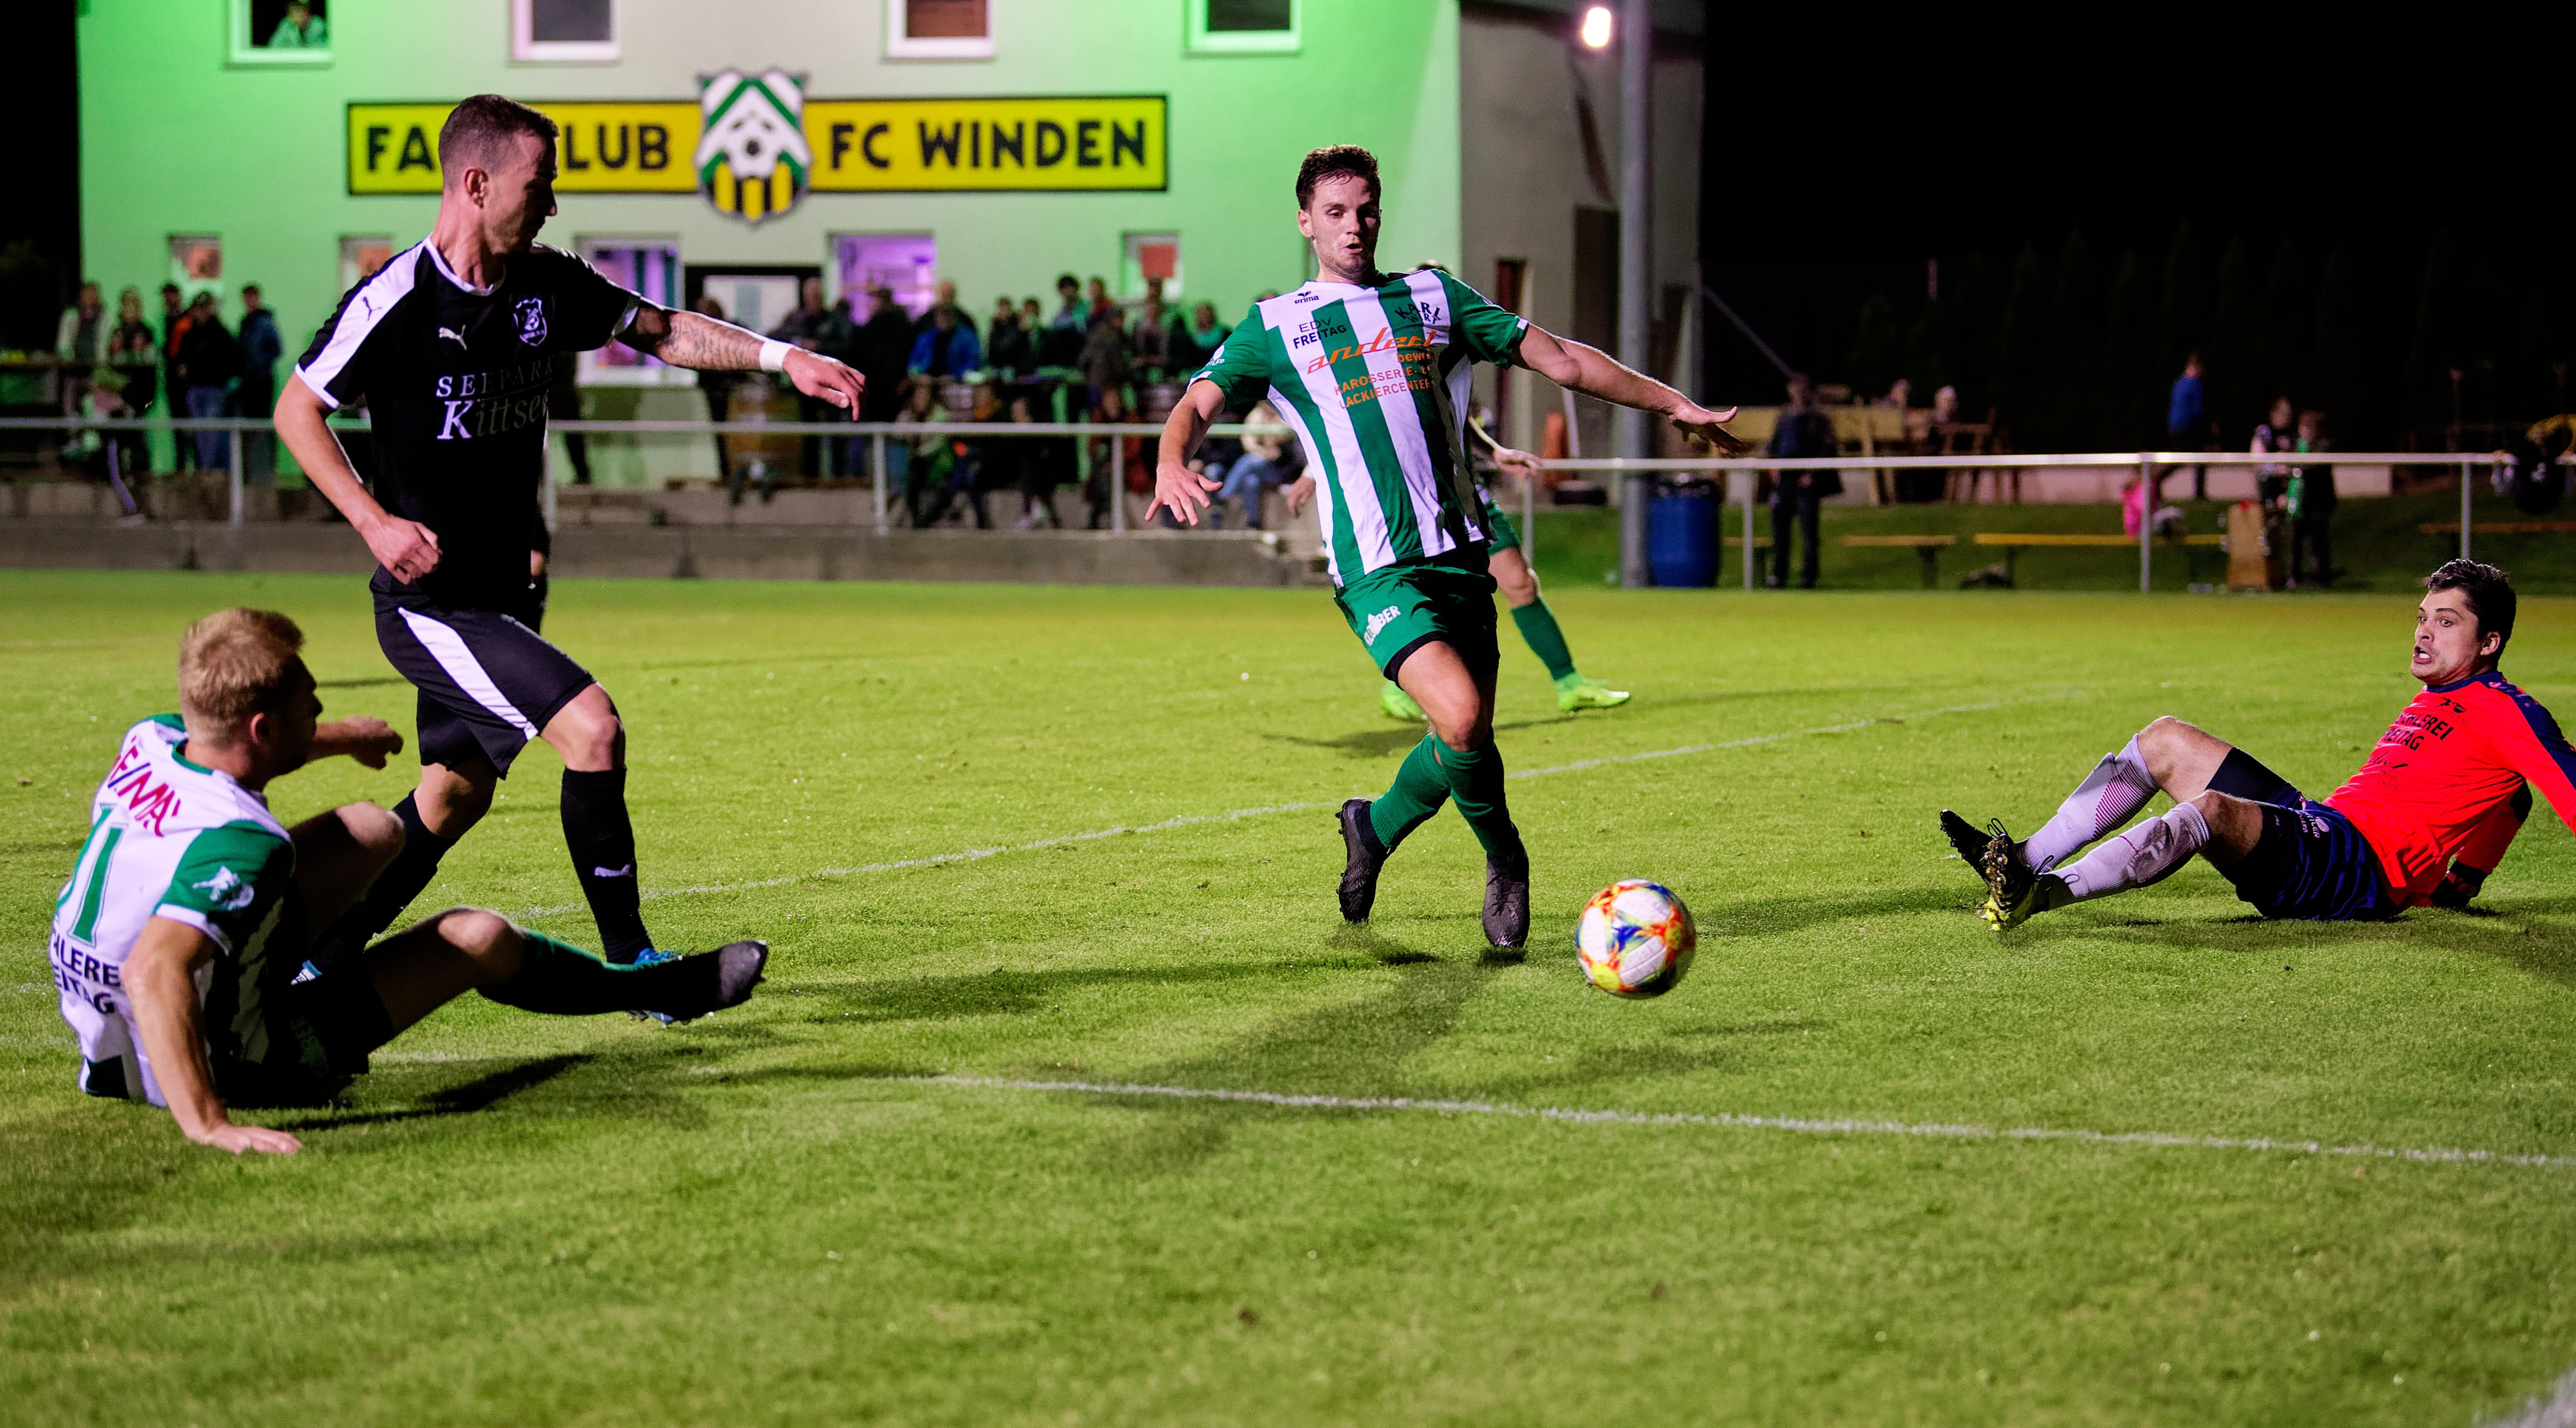 Loose ball in front of Winden net